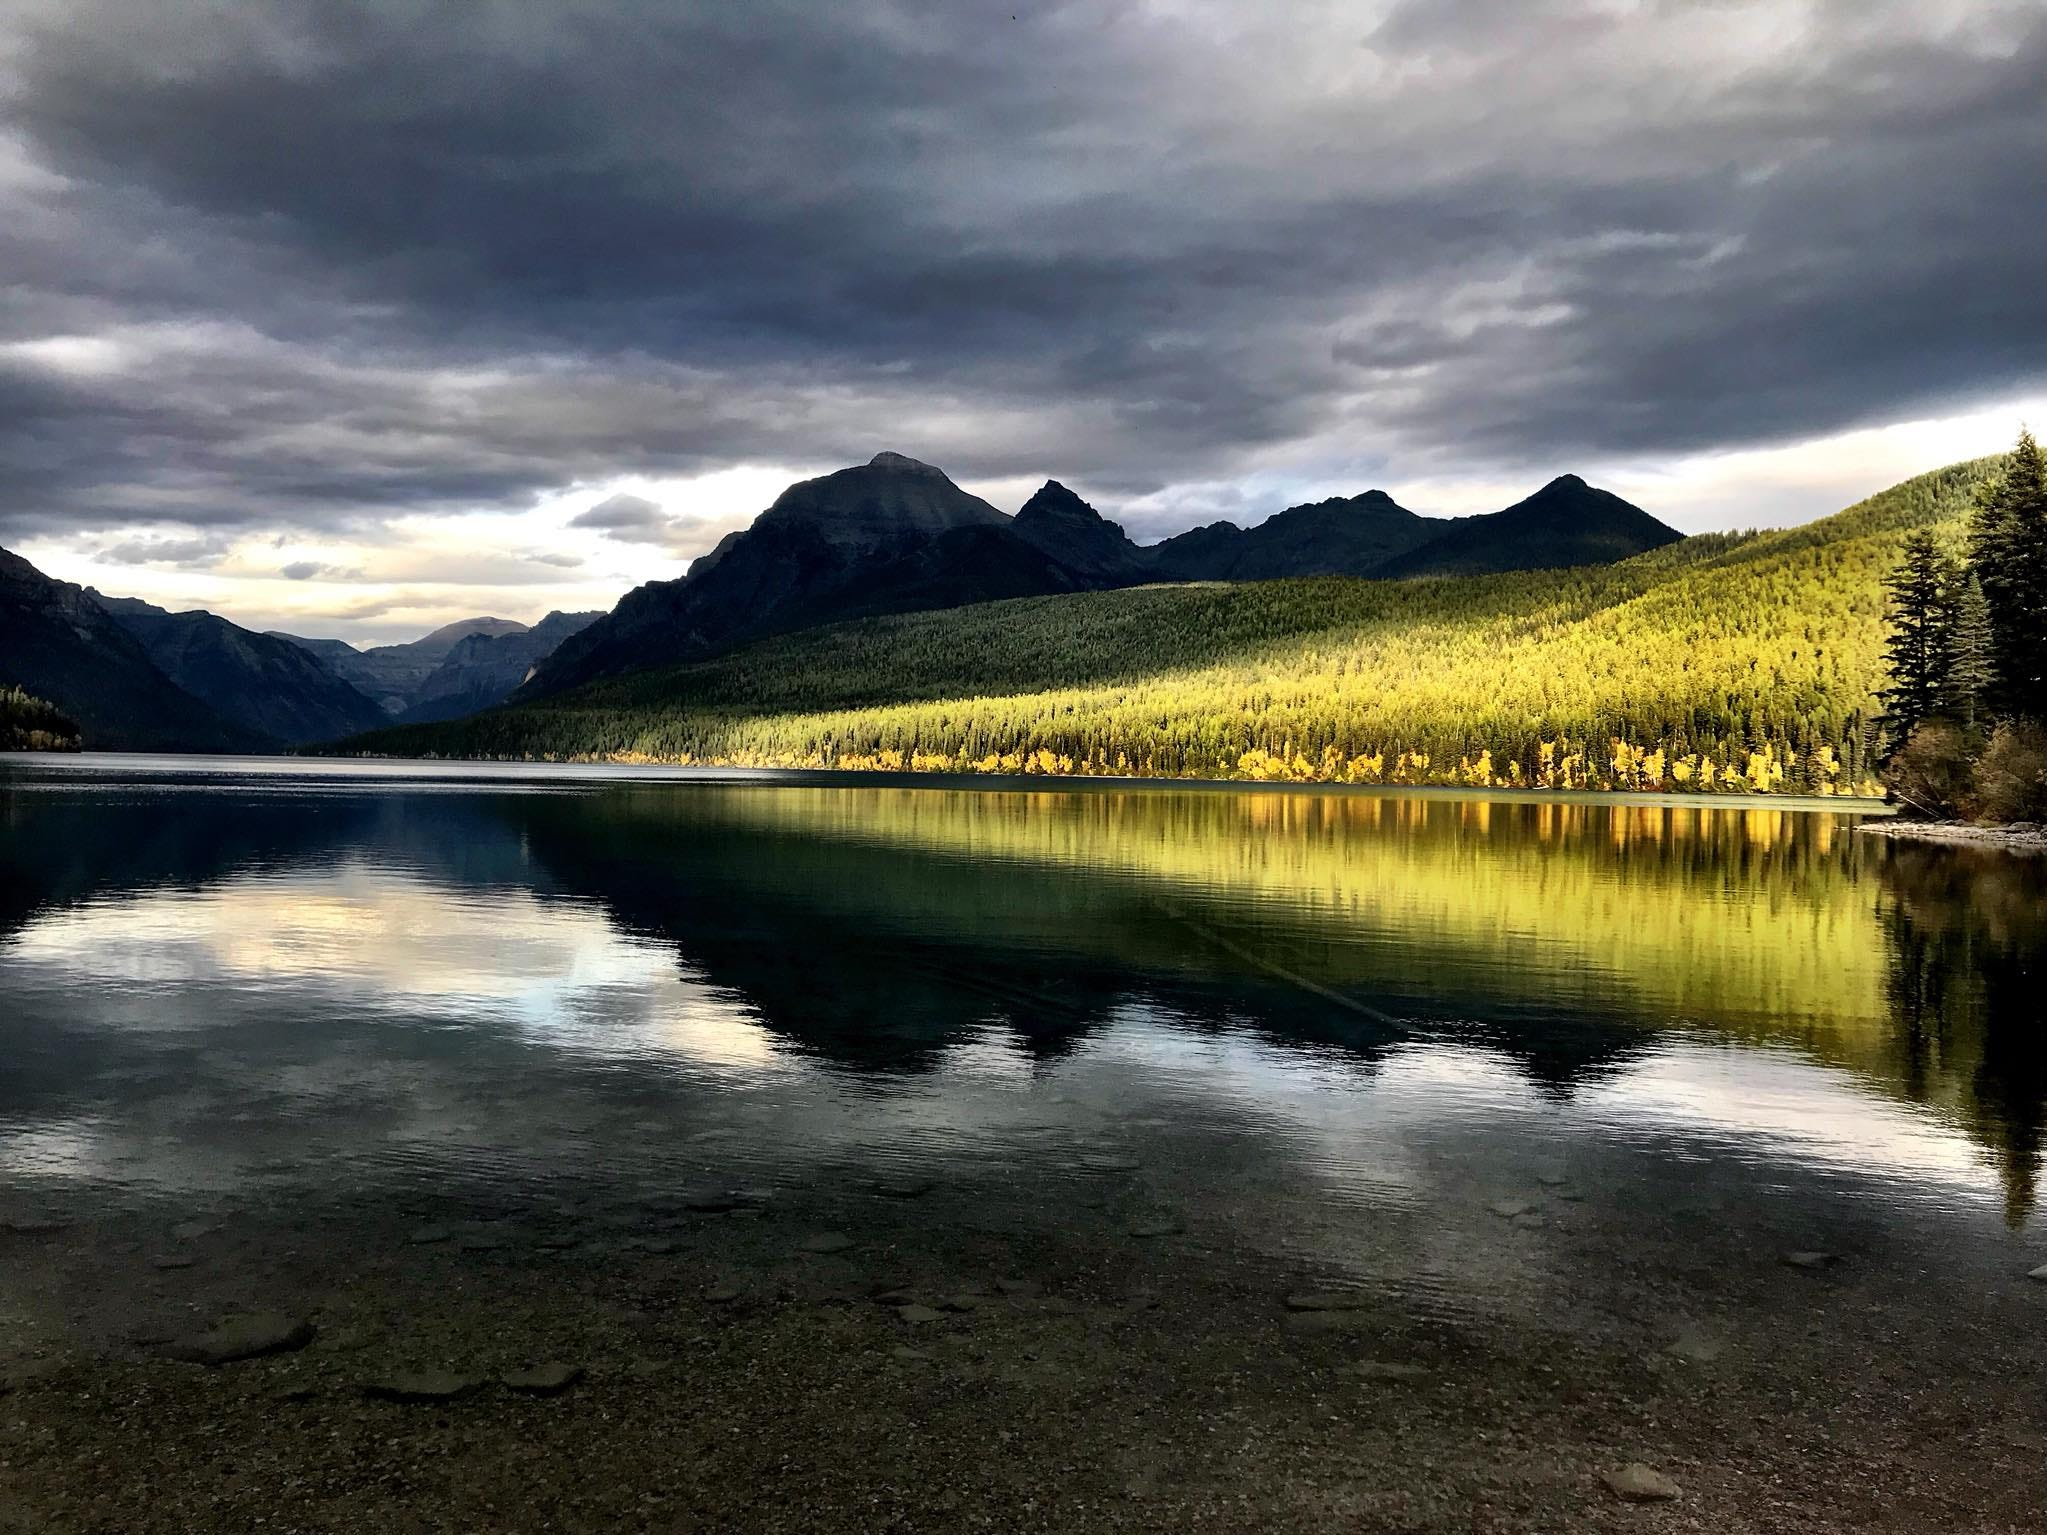 Evening light brightens the banks of crystal-clear Bowman Lake in Glacier National Park in late September